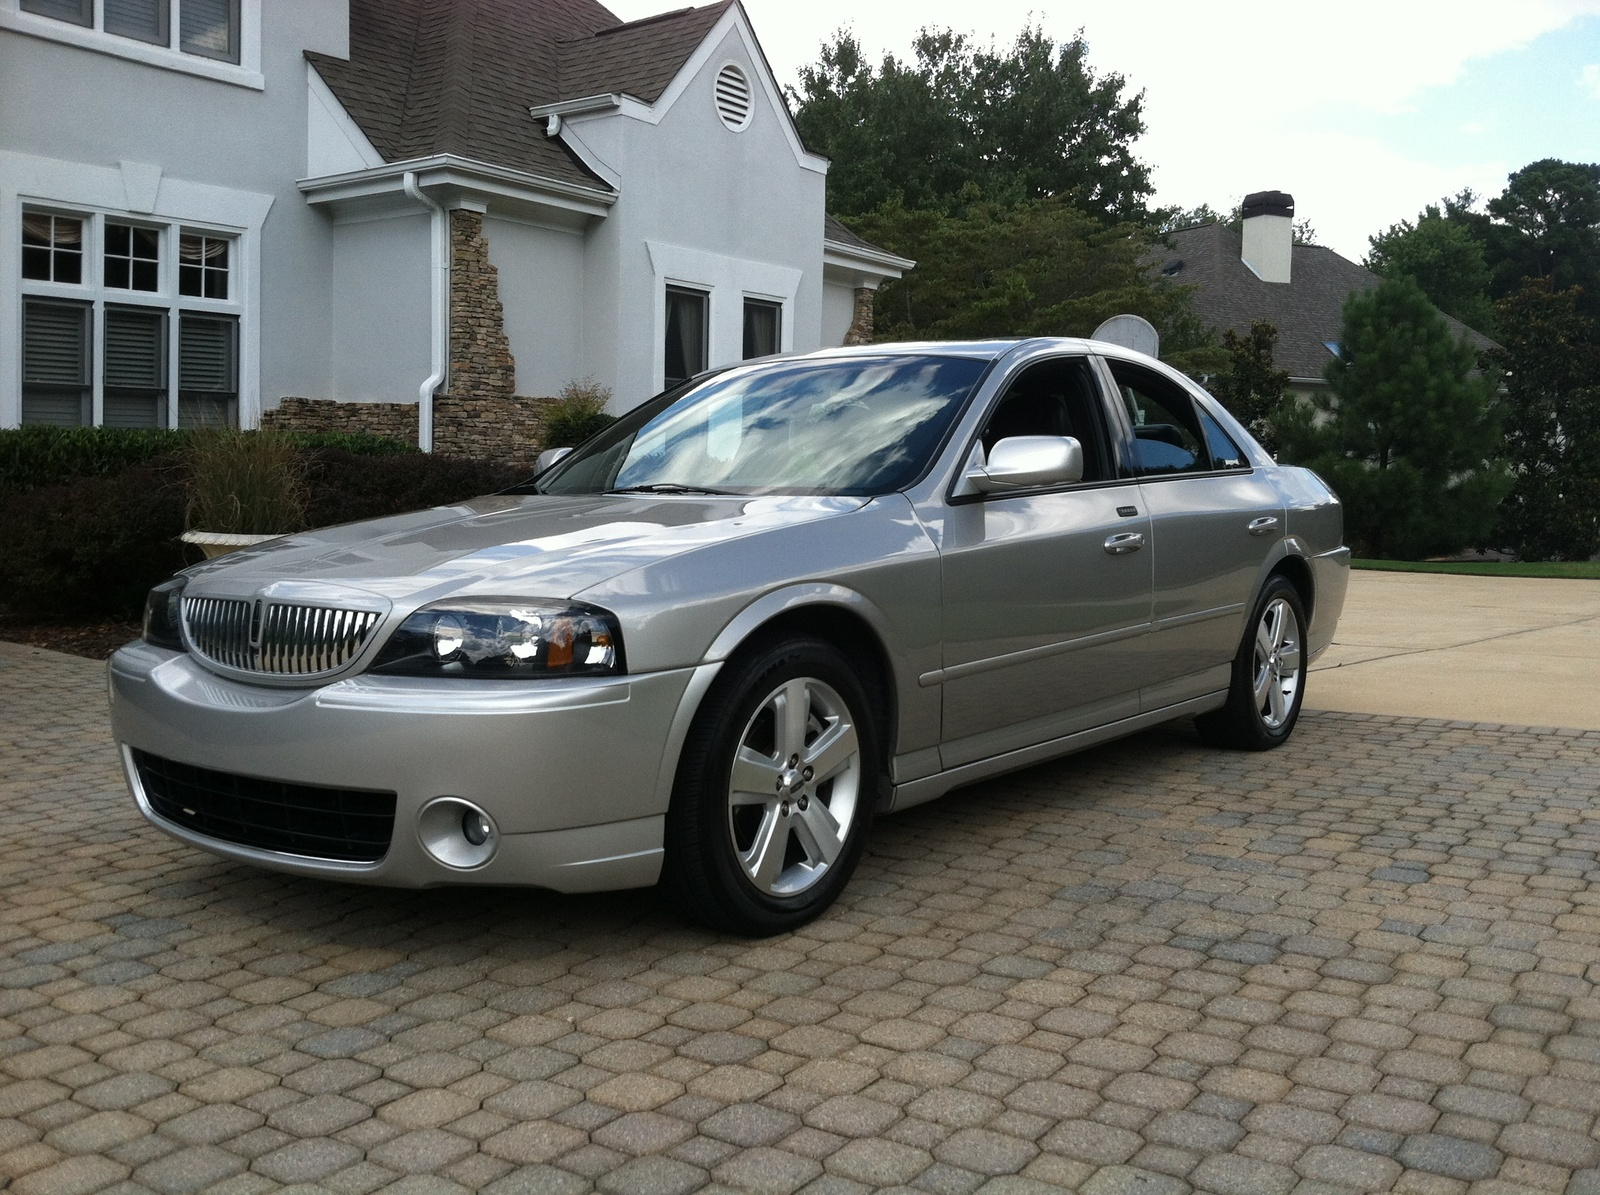 2003 Lincoln LS - Overview - CarGurus